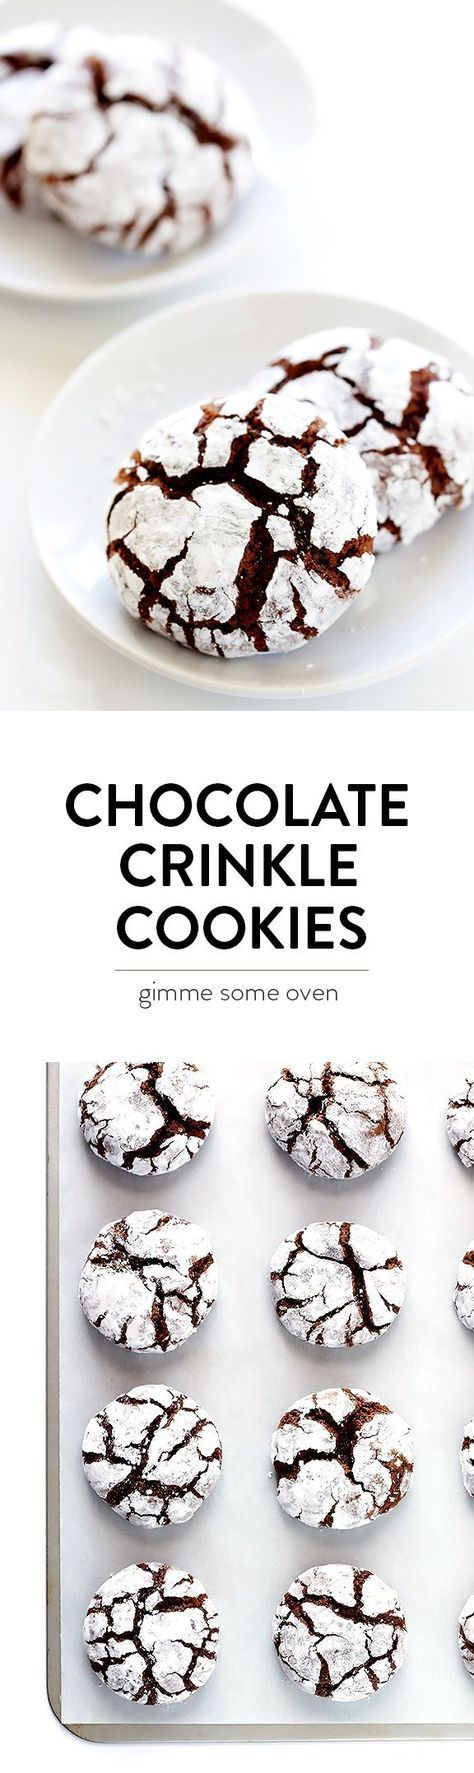 This Chocolate Crinkle Cookies recipe is a classic for a reason! They're easy to make, wonderfully sweet and chocolatey, and perfect for the holidays!